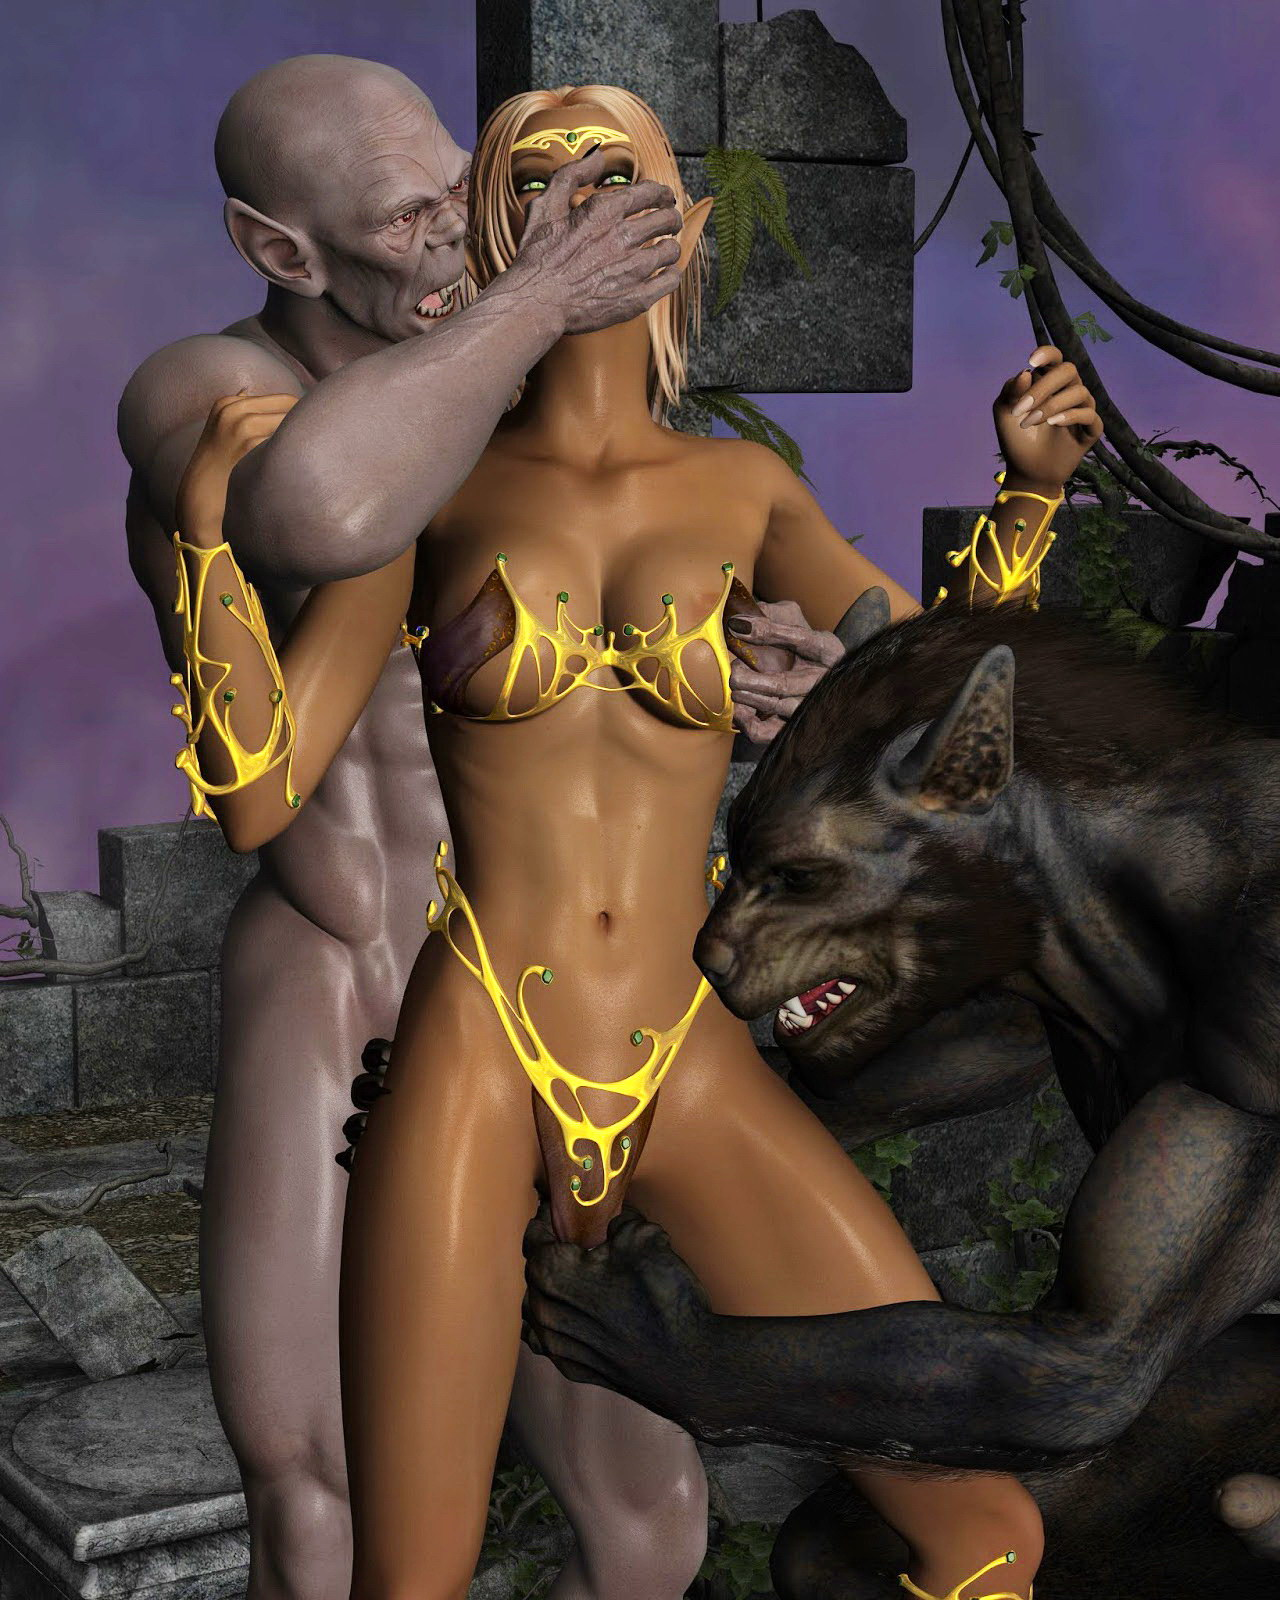 Goblin and elf sex sex download